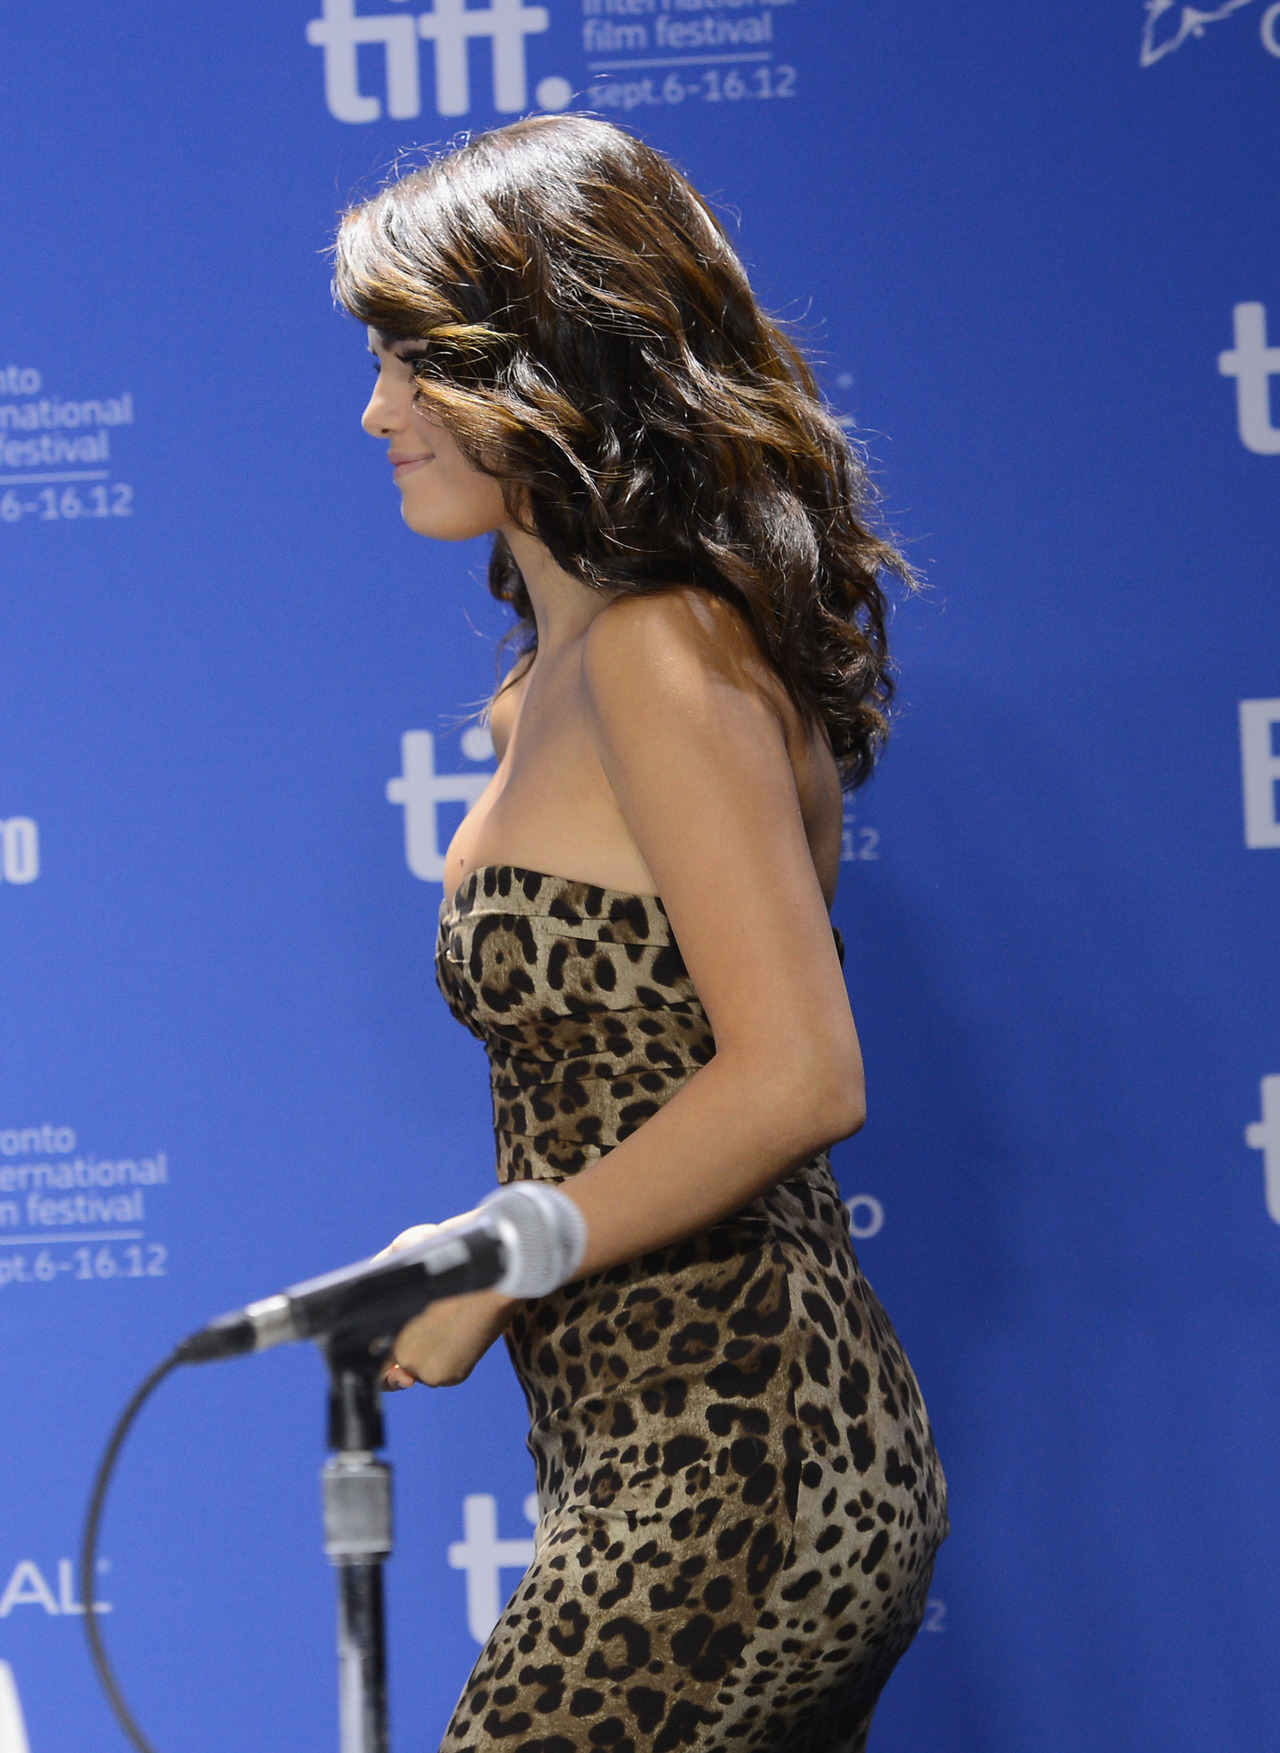 Selena Gomez at the TIFF press conference for Spring Breakers, September 7th